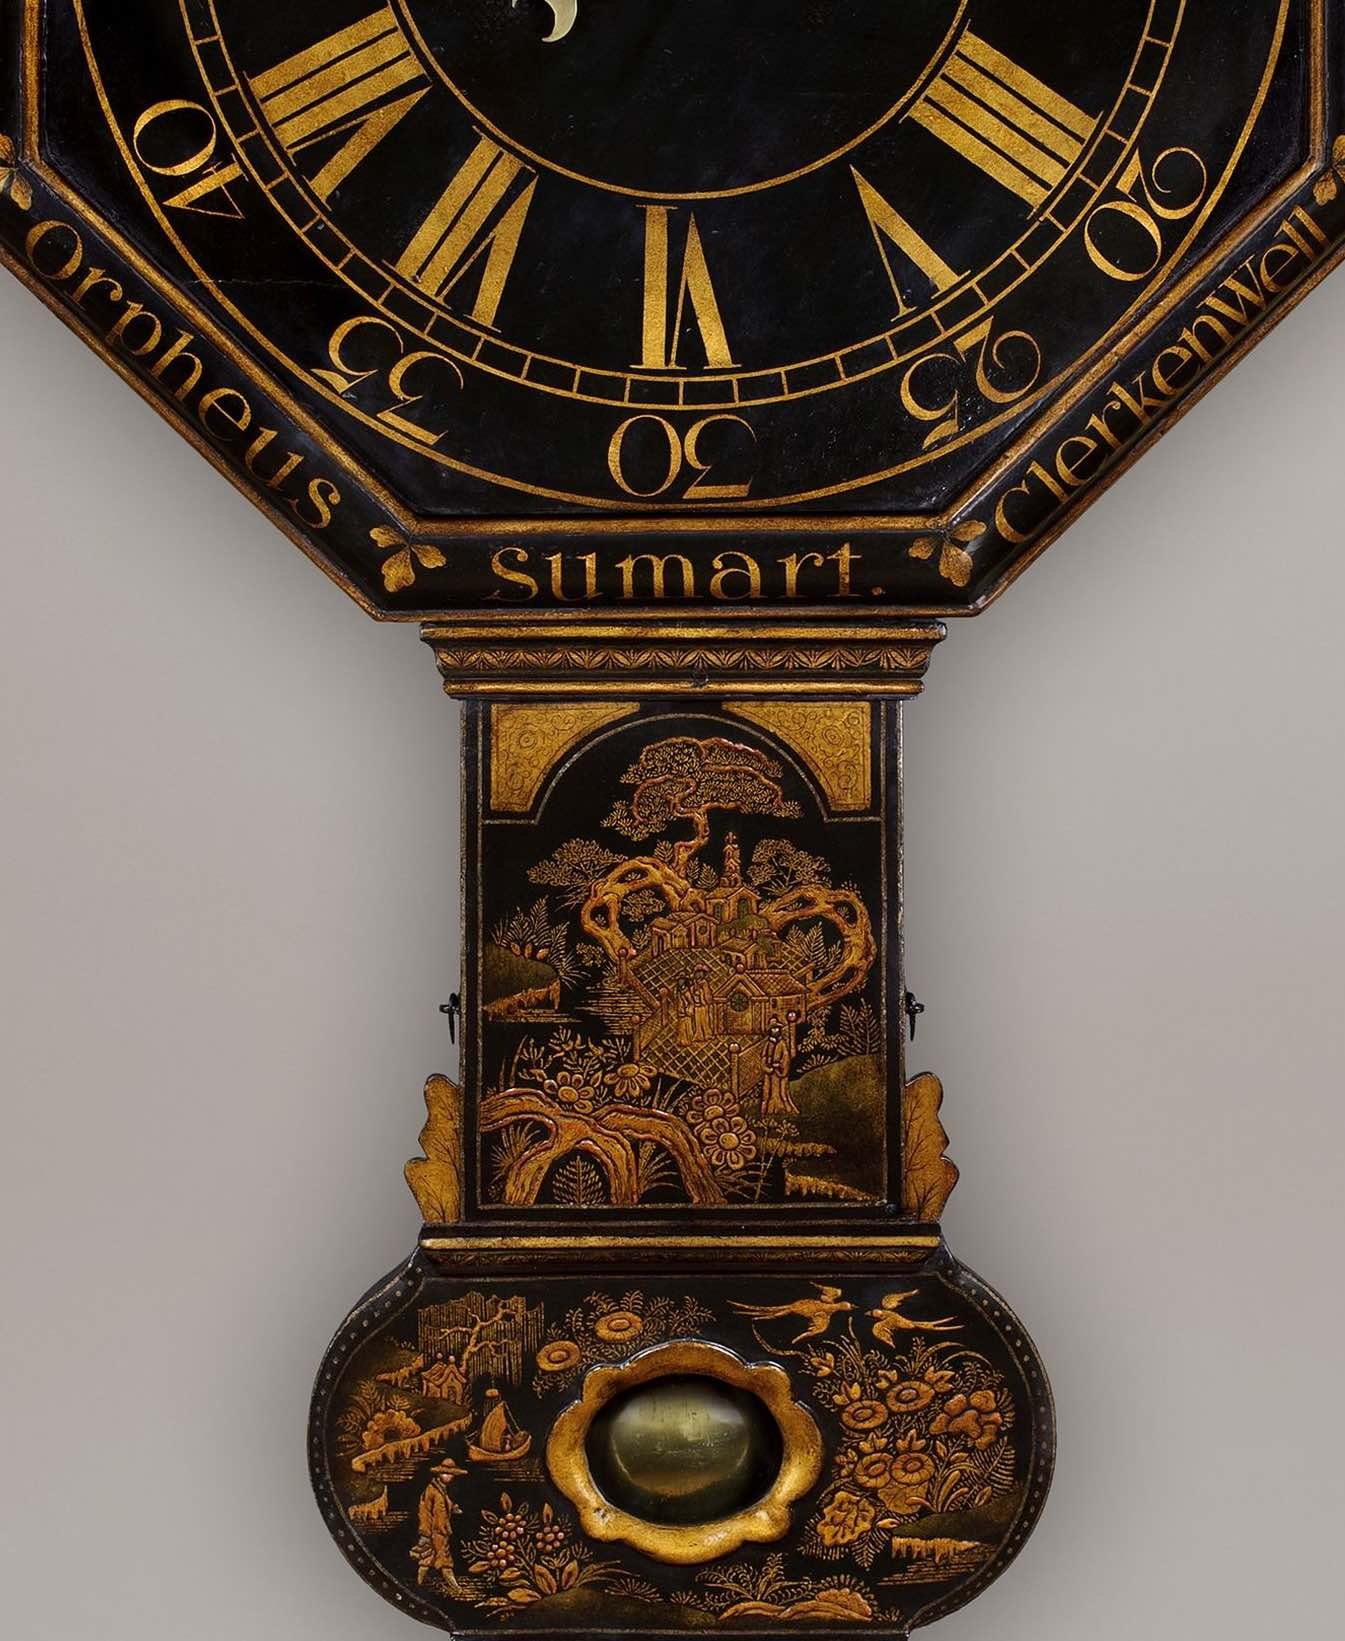 ORPHEUS SUMART, CLERKENWELL. AN EXCEPTIONALLY RARE, EARLY OCTAGONAL DIAL TAVERN TIMEPIECE BY THIS WELL-KNOWN EARLY MAKER.